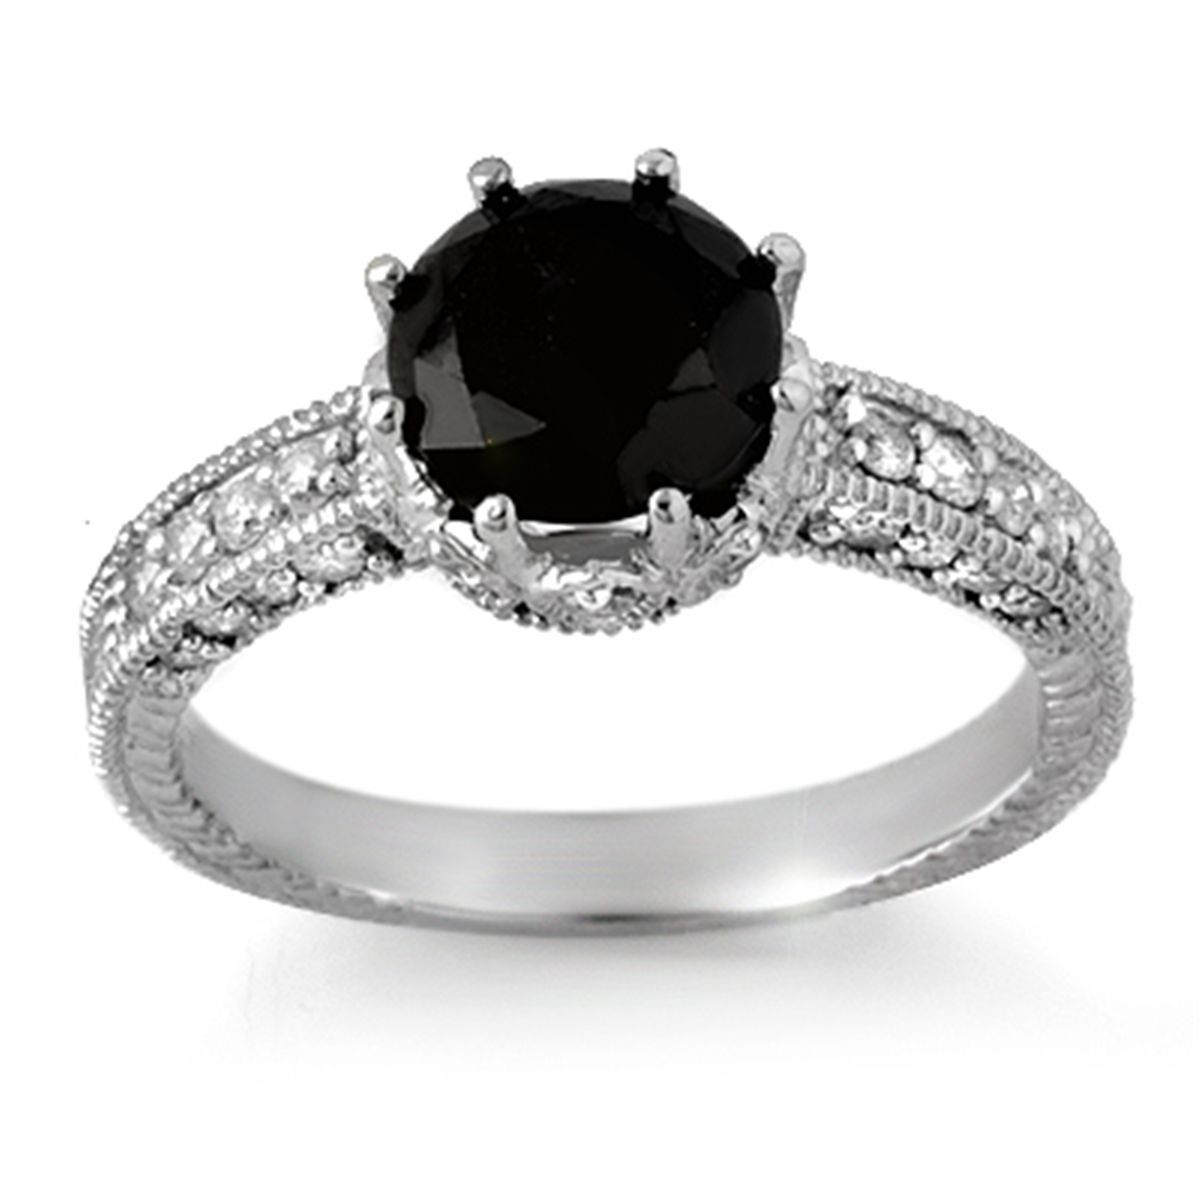 Black Wedding Rings With Diamonds The Sensuous Black Diamond Rings